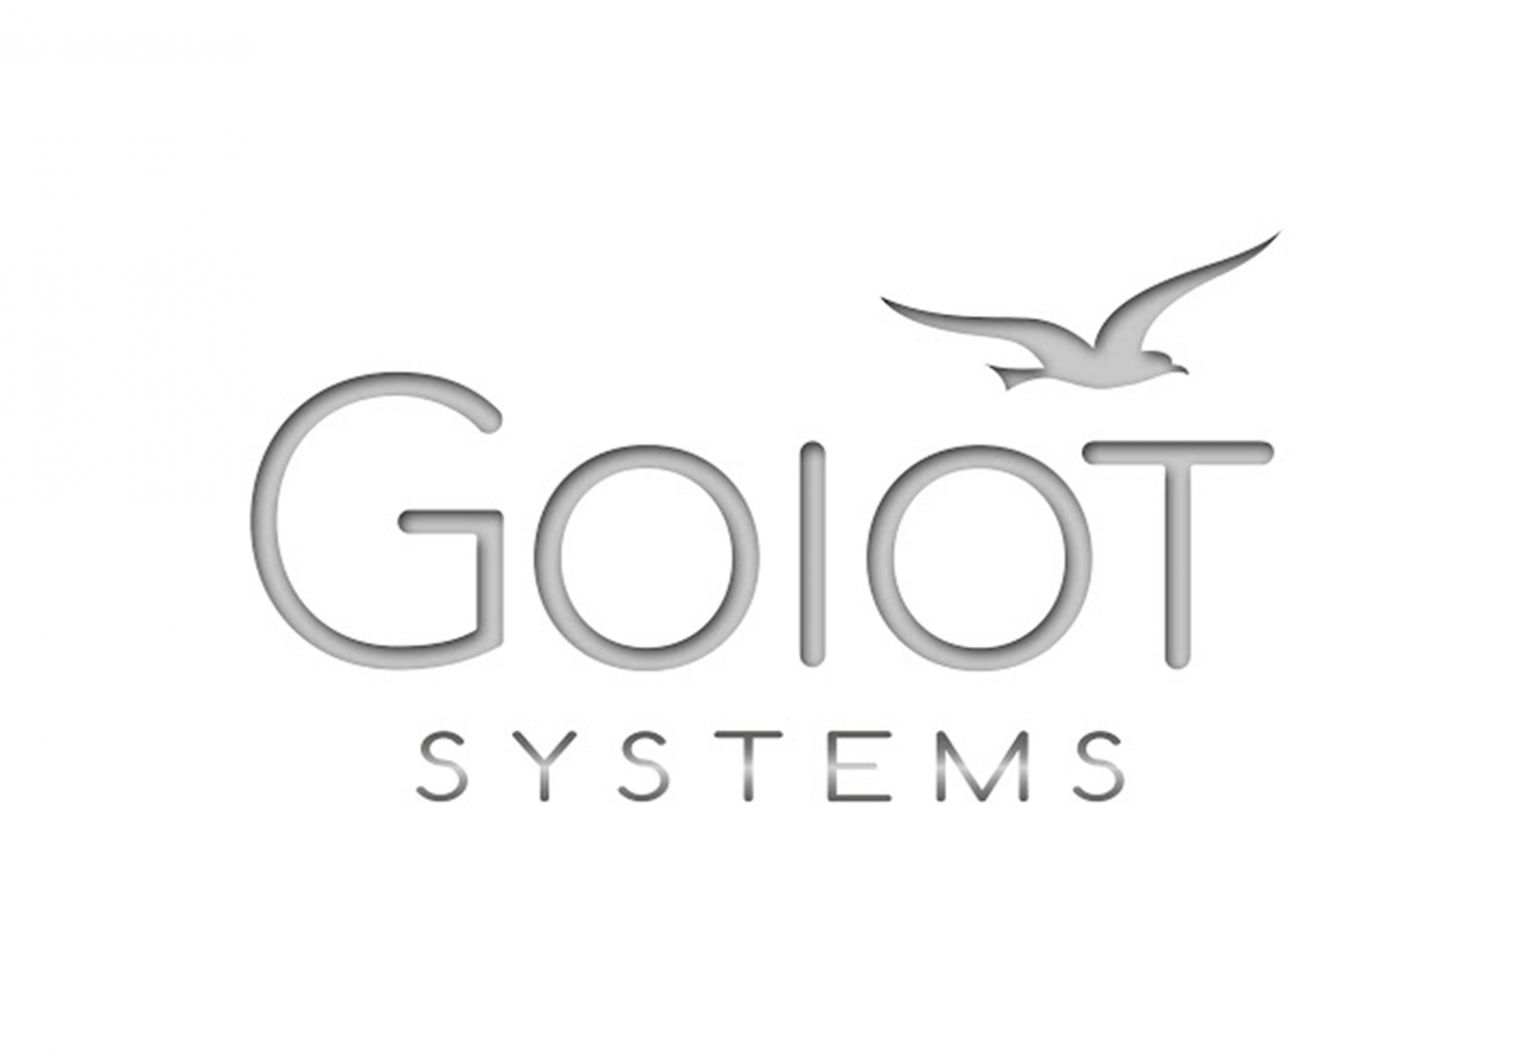 Recall of Goïot-brand escape hatches